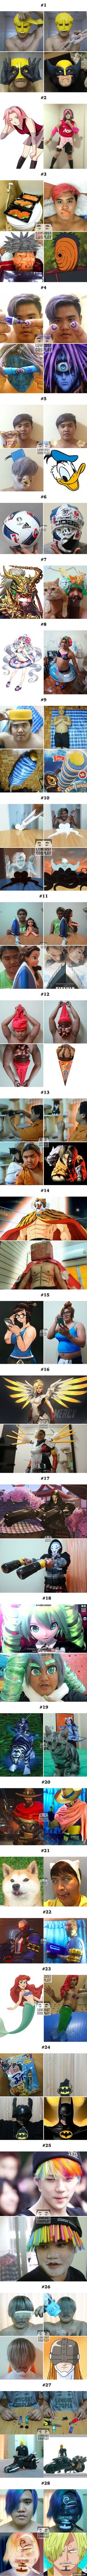 Cosplay Guy Strikes Again With Low-Cost Costumes Made From Household Objects (Lowcost Cosplay)